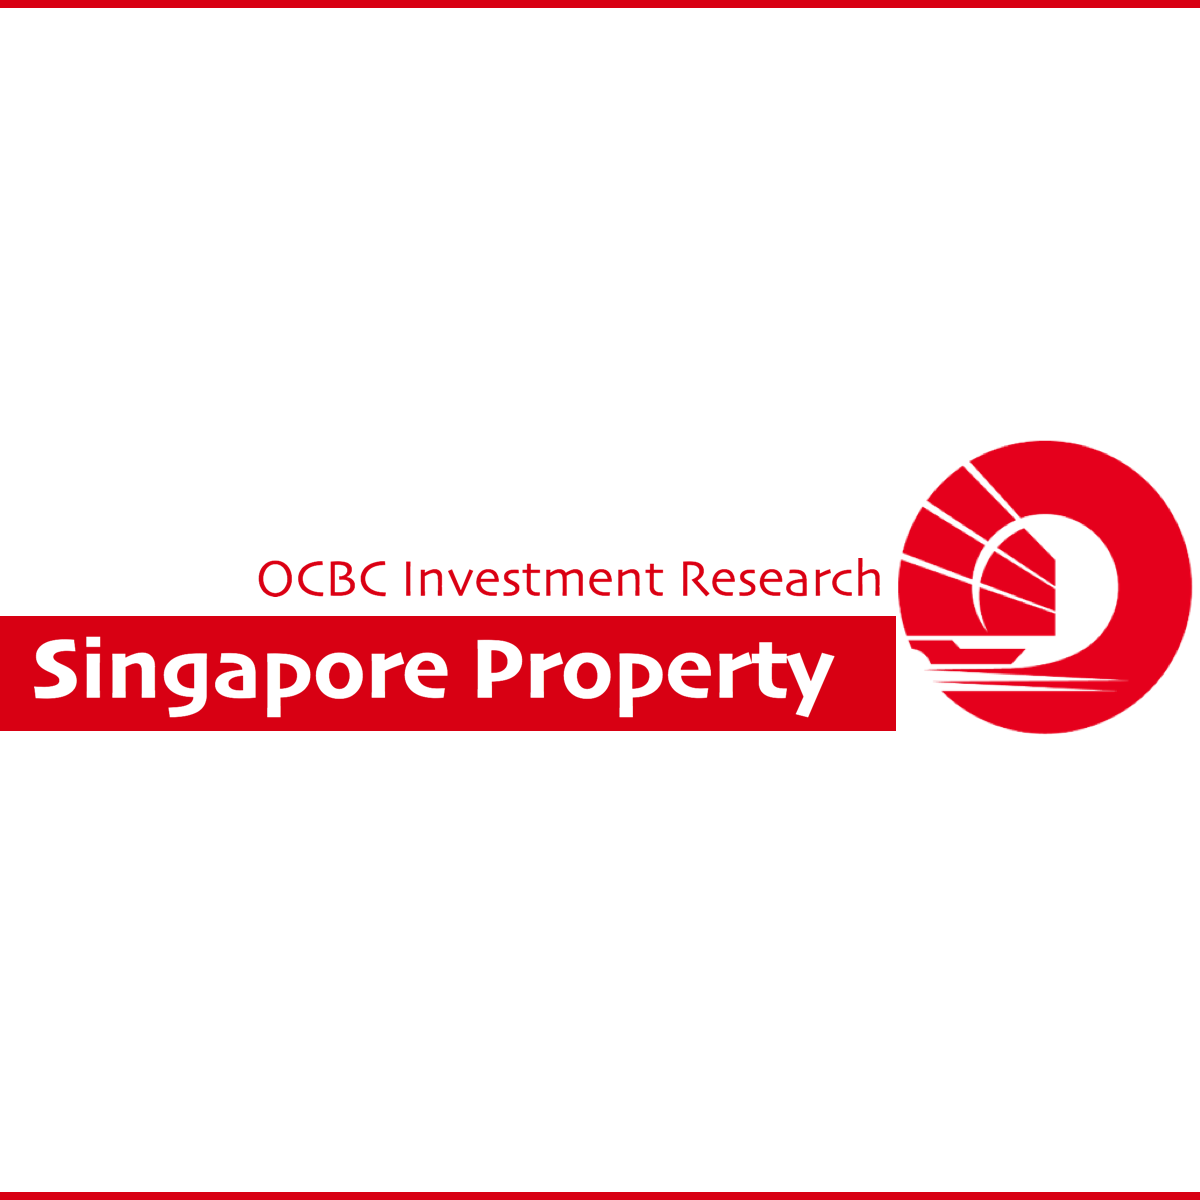 Singapore Property Sector - OCBC Investment 2018-03-12: A Switch From Defensive To Growth